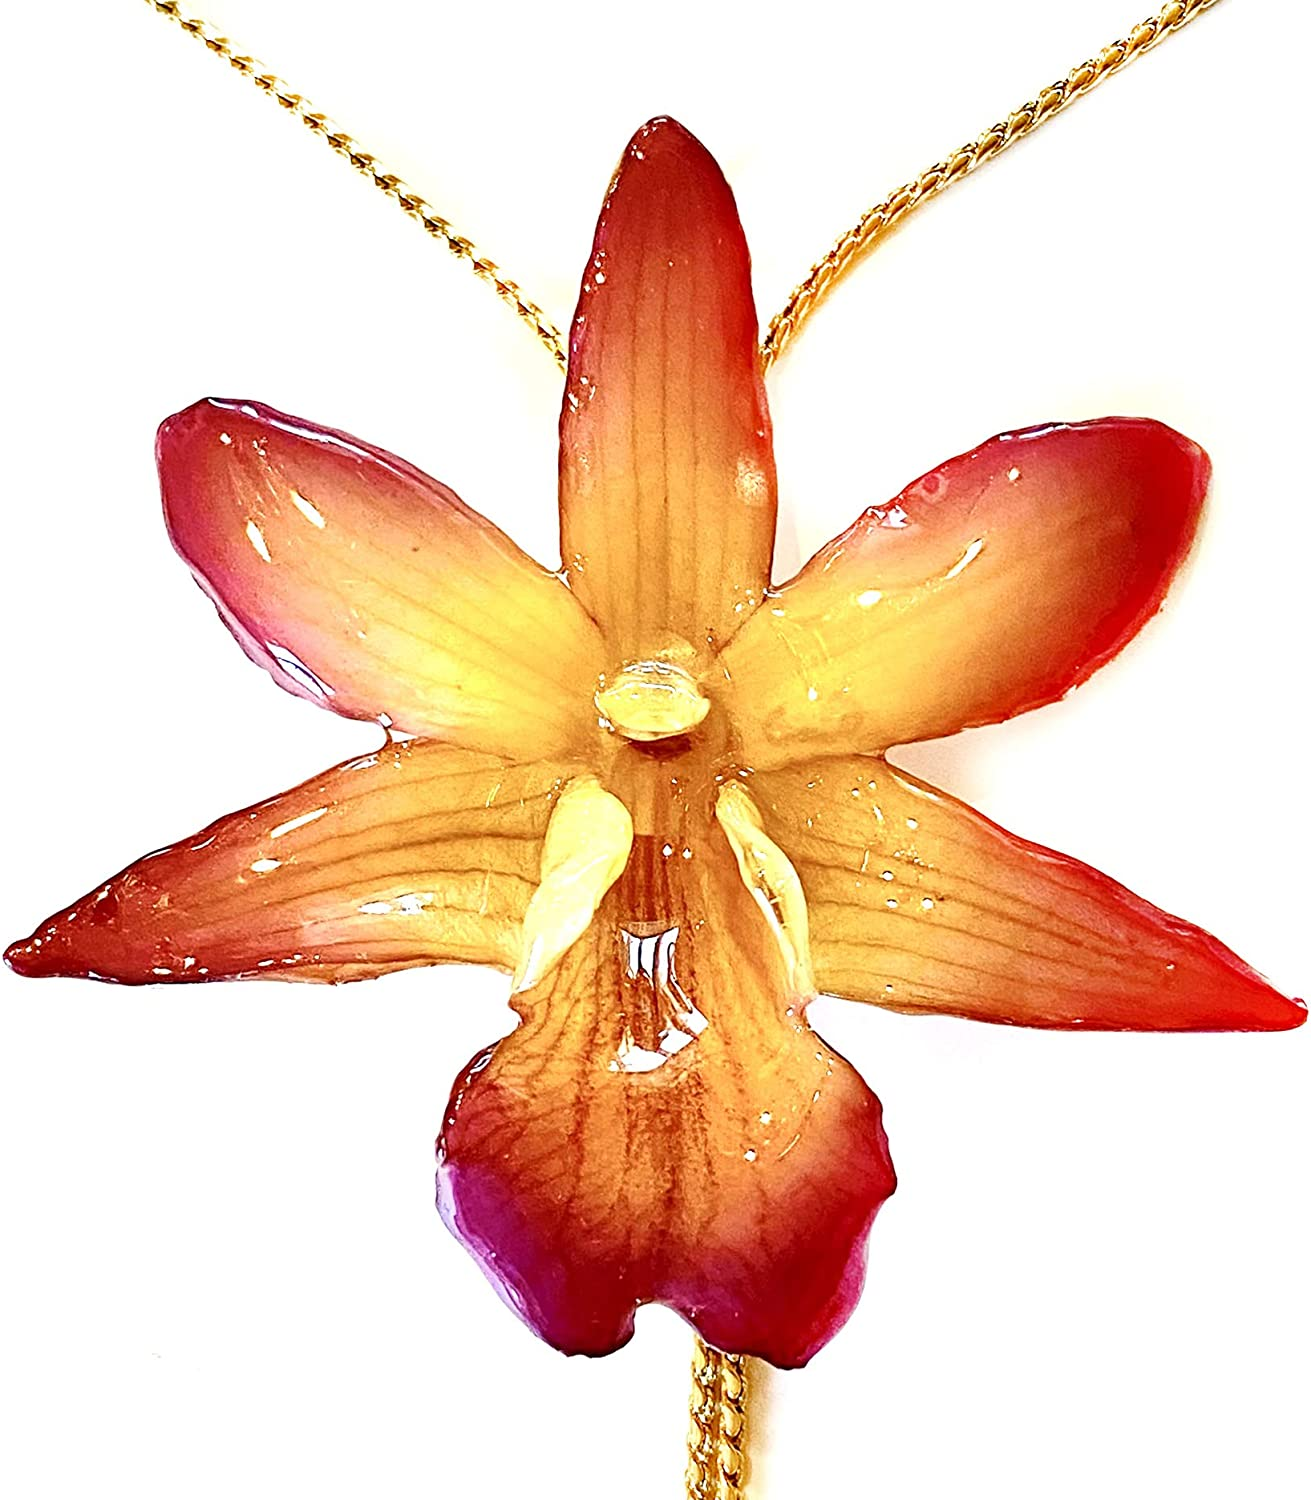 Sunne Tropical Dendrobium Formosum Orchid Jewelry - Real Flower Pendant Necklaces 18 Inch - Flowers Preserved Resin Jewlery - Teen Girl Women Gold Plated 24K Chain